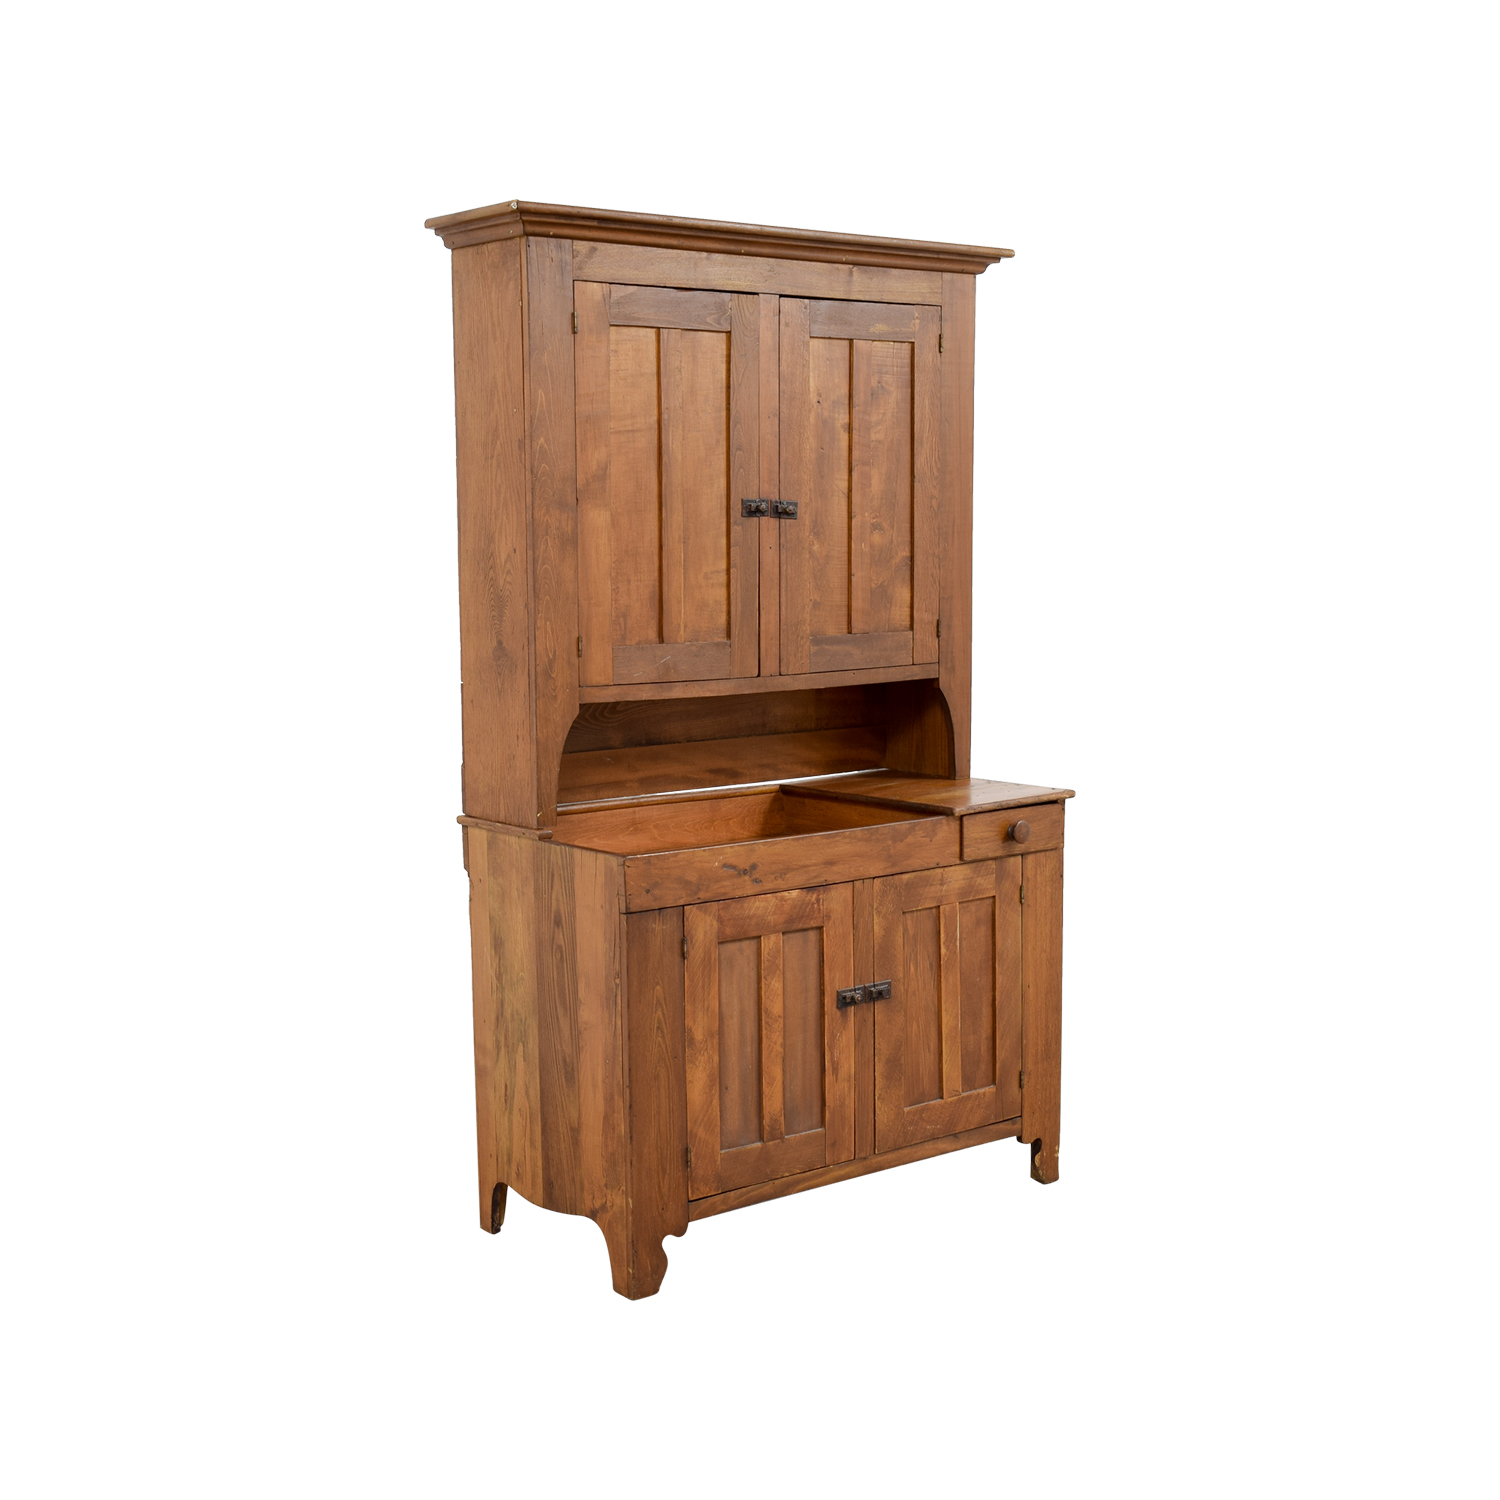 ... Antique Amish Hutch Cupboard discount ... - 56% OFF - Antique Amish Hutch Cupboard / Storage